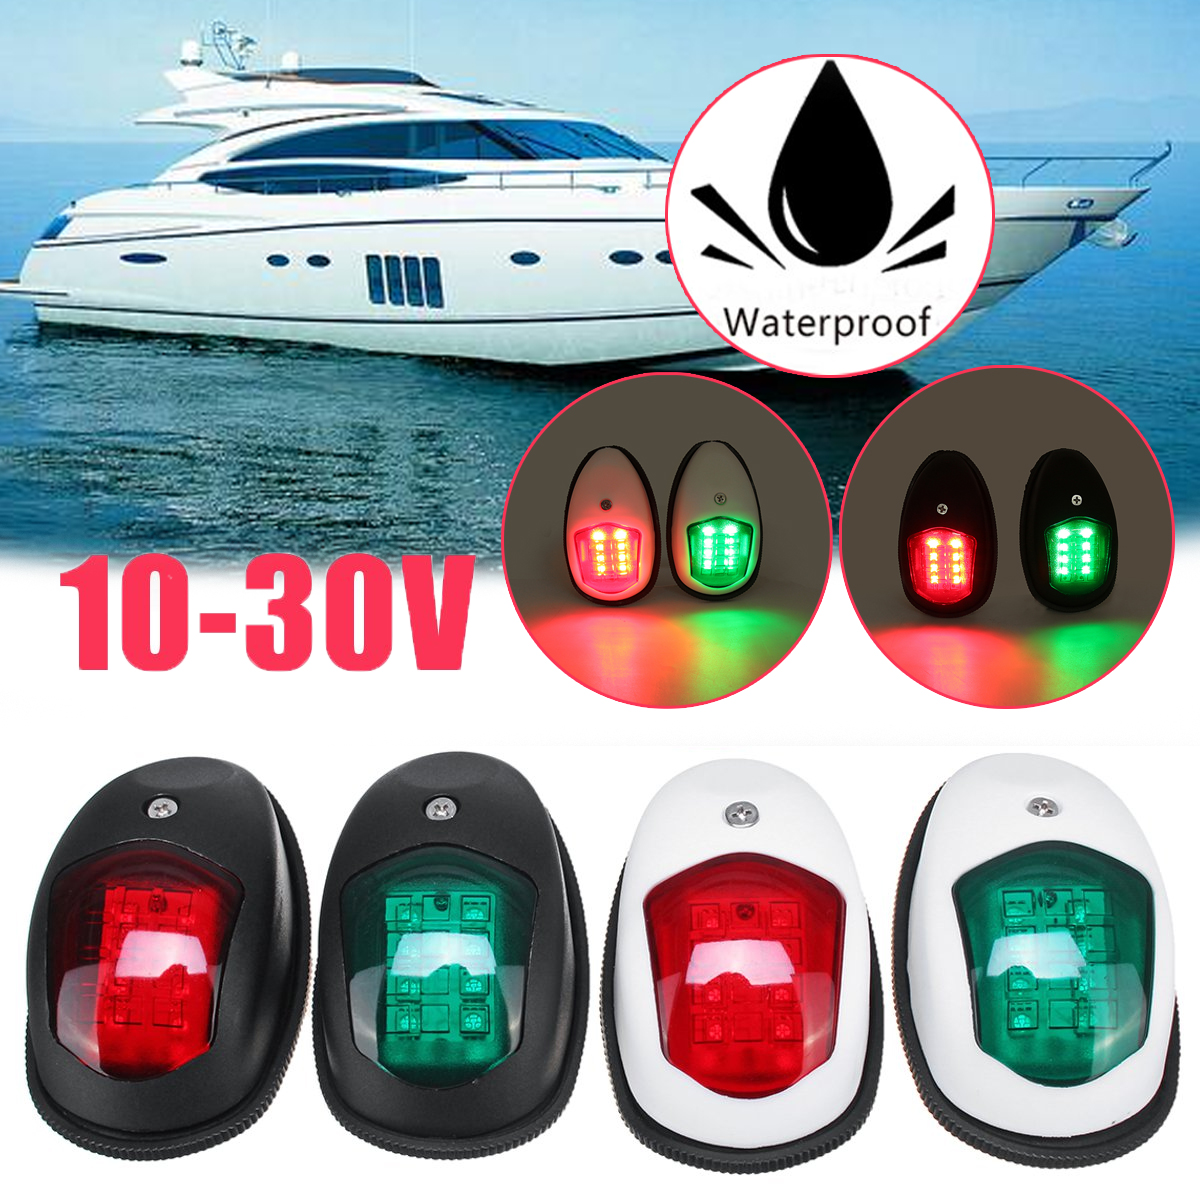 2Pcs 10V-30V Universal ABS LED Navigation Light Lamp Signal Lamp For Marine Boat Yacht Truck Trailer Van(China)